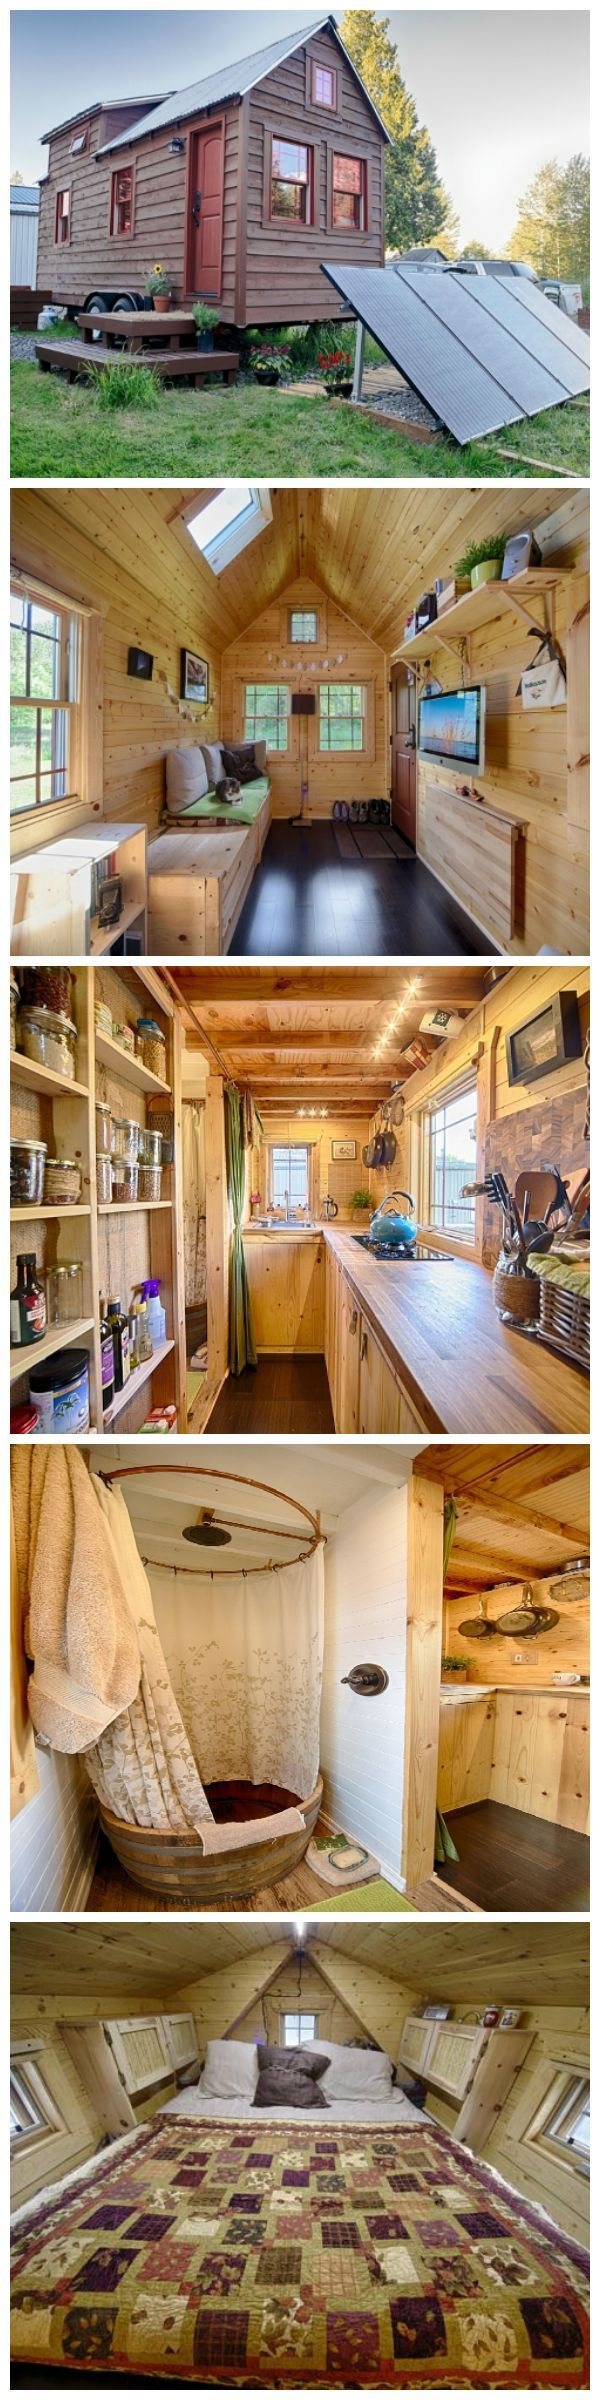 The Tiny Tack House - I don't think I could live here, but I see some cool ideas for my place. Or this might be a nice camping cabin. LW